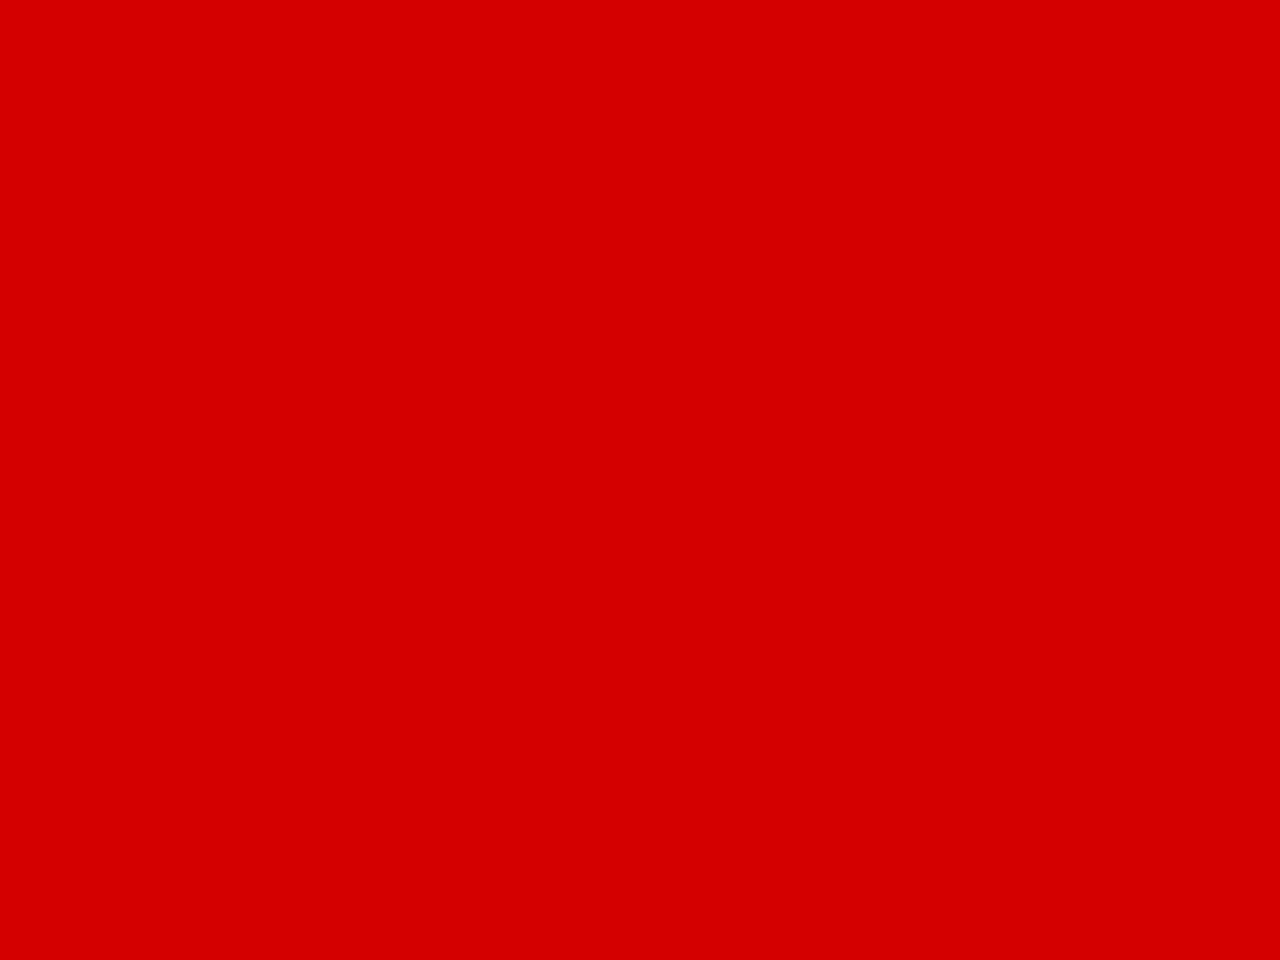 1280x960 Rosso Corsa Solid Color Background